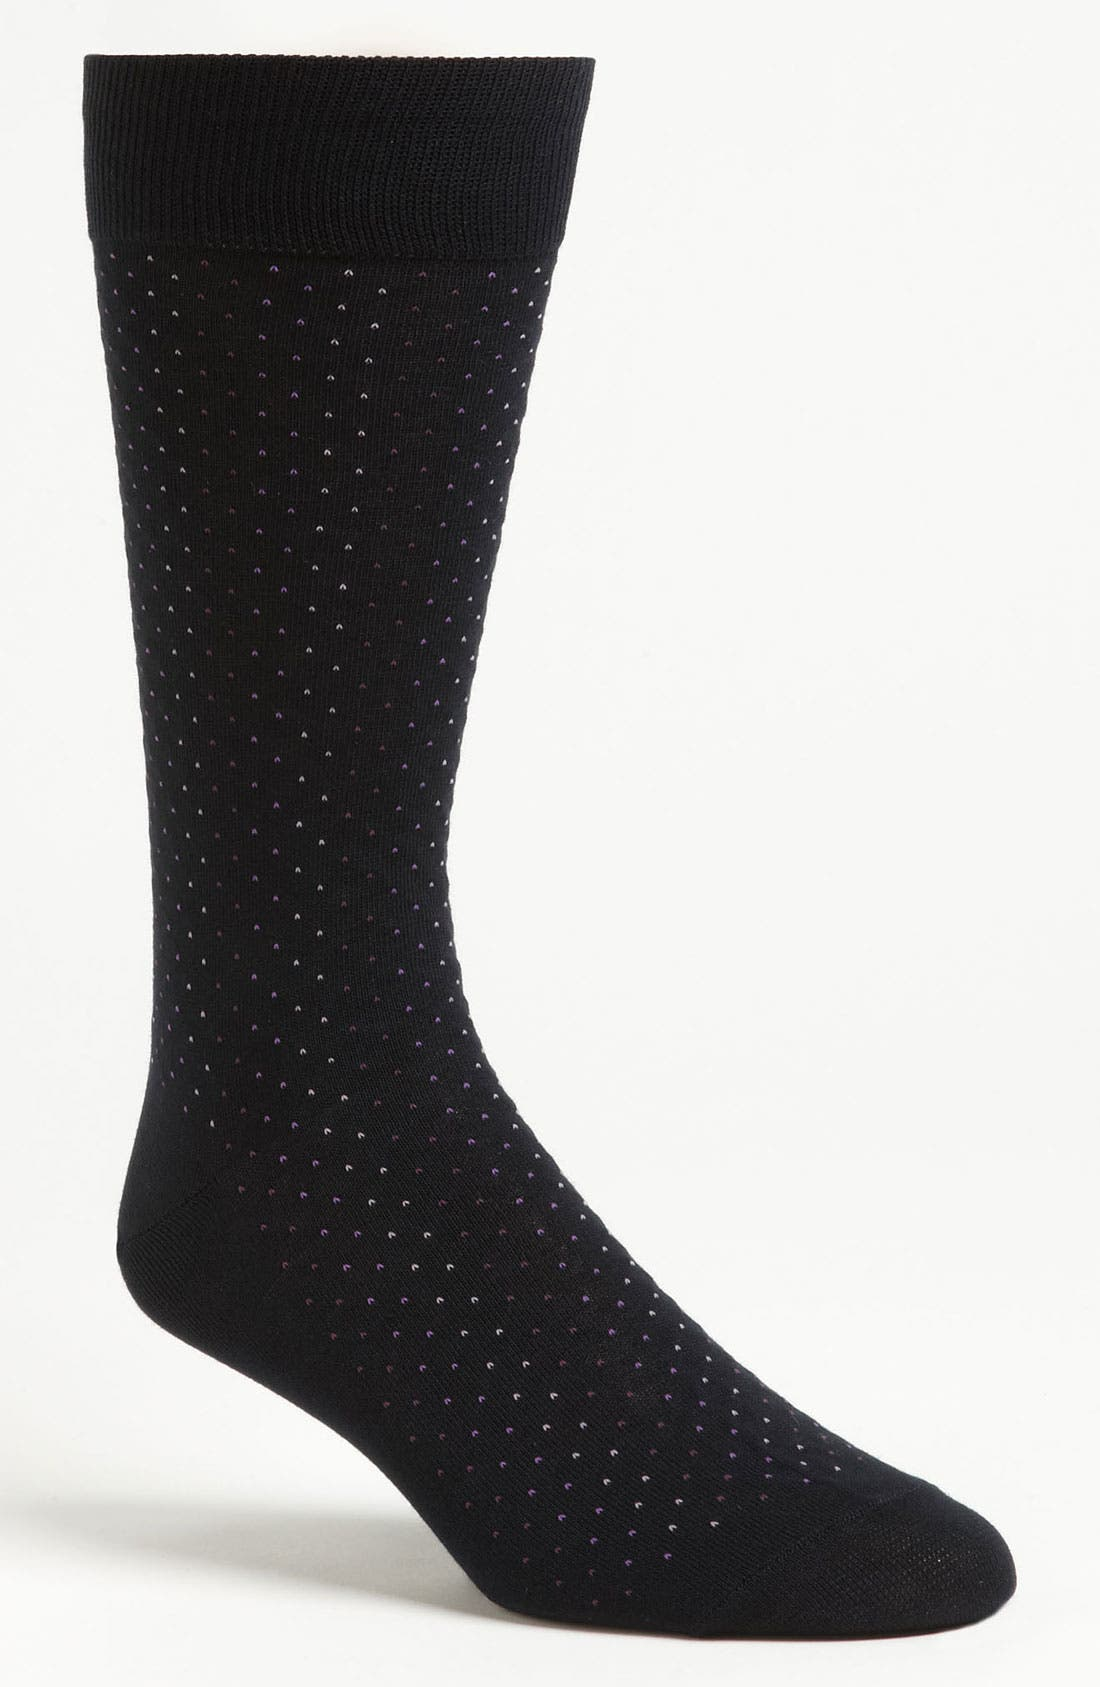 Main Image - Cole Haan 'Scattered Dots' Socks